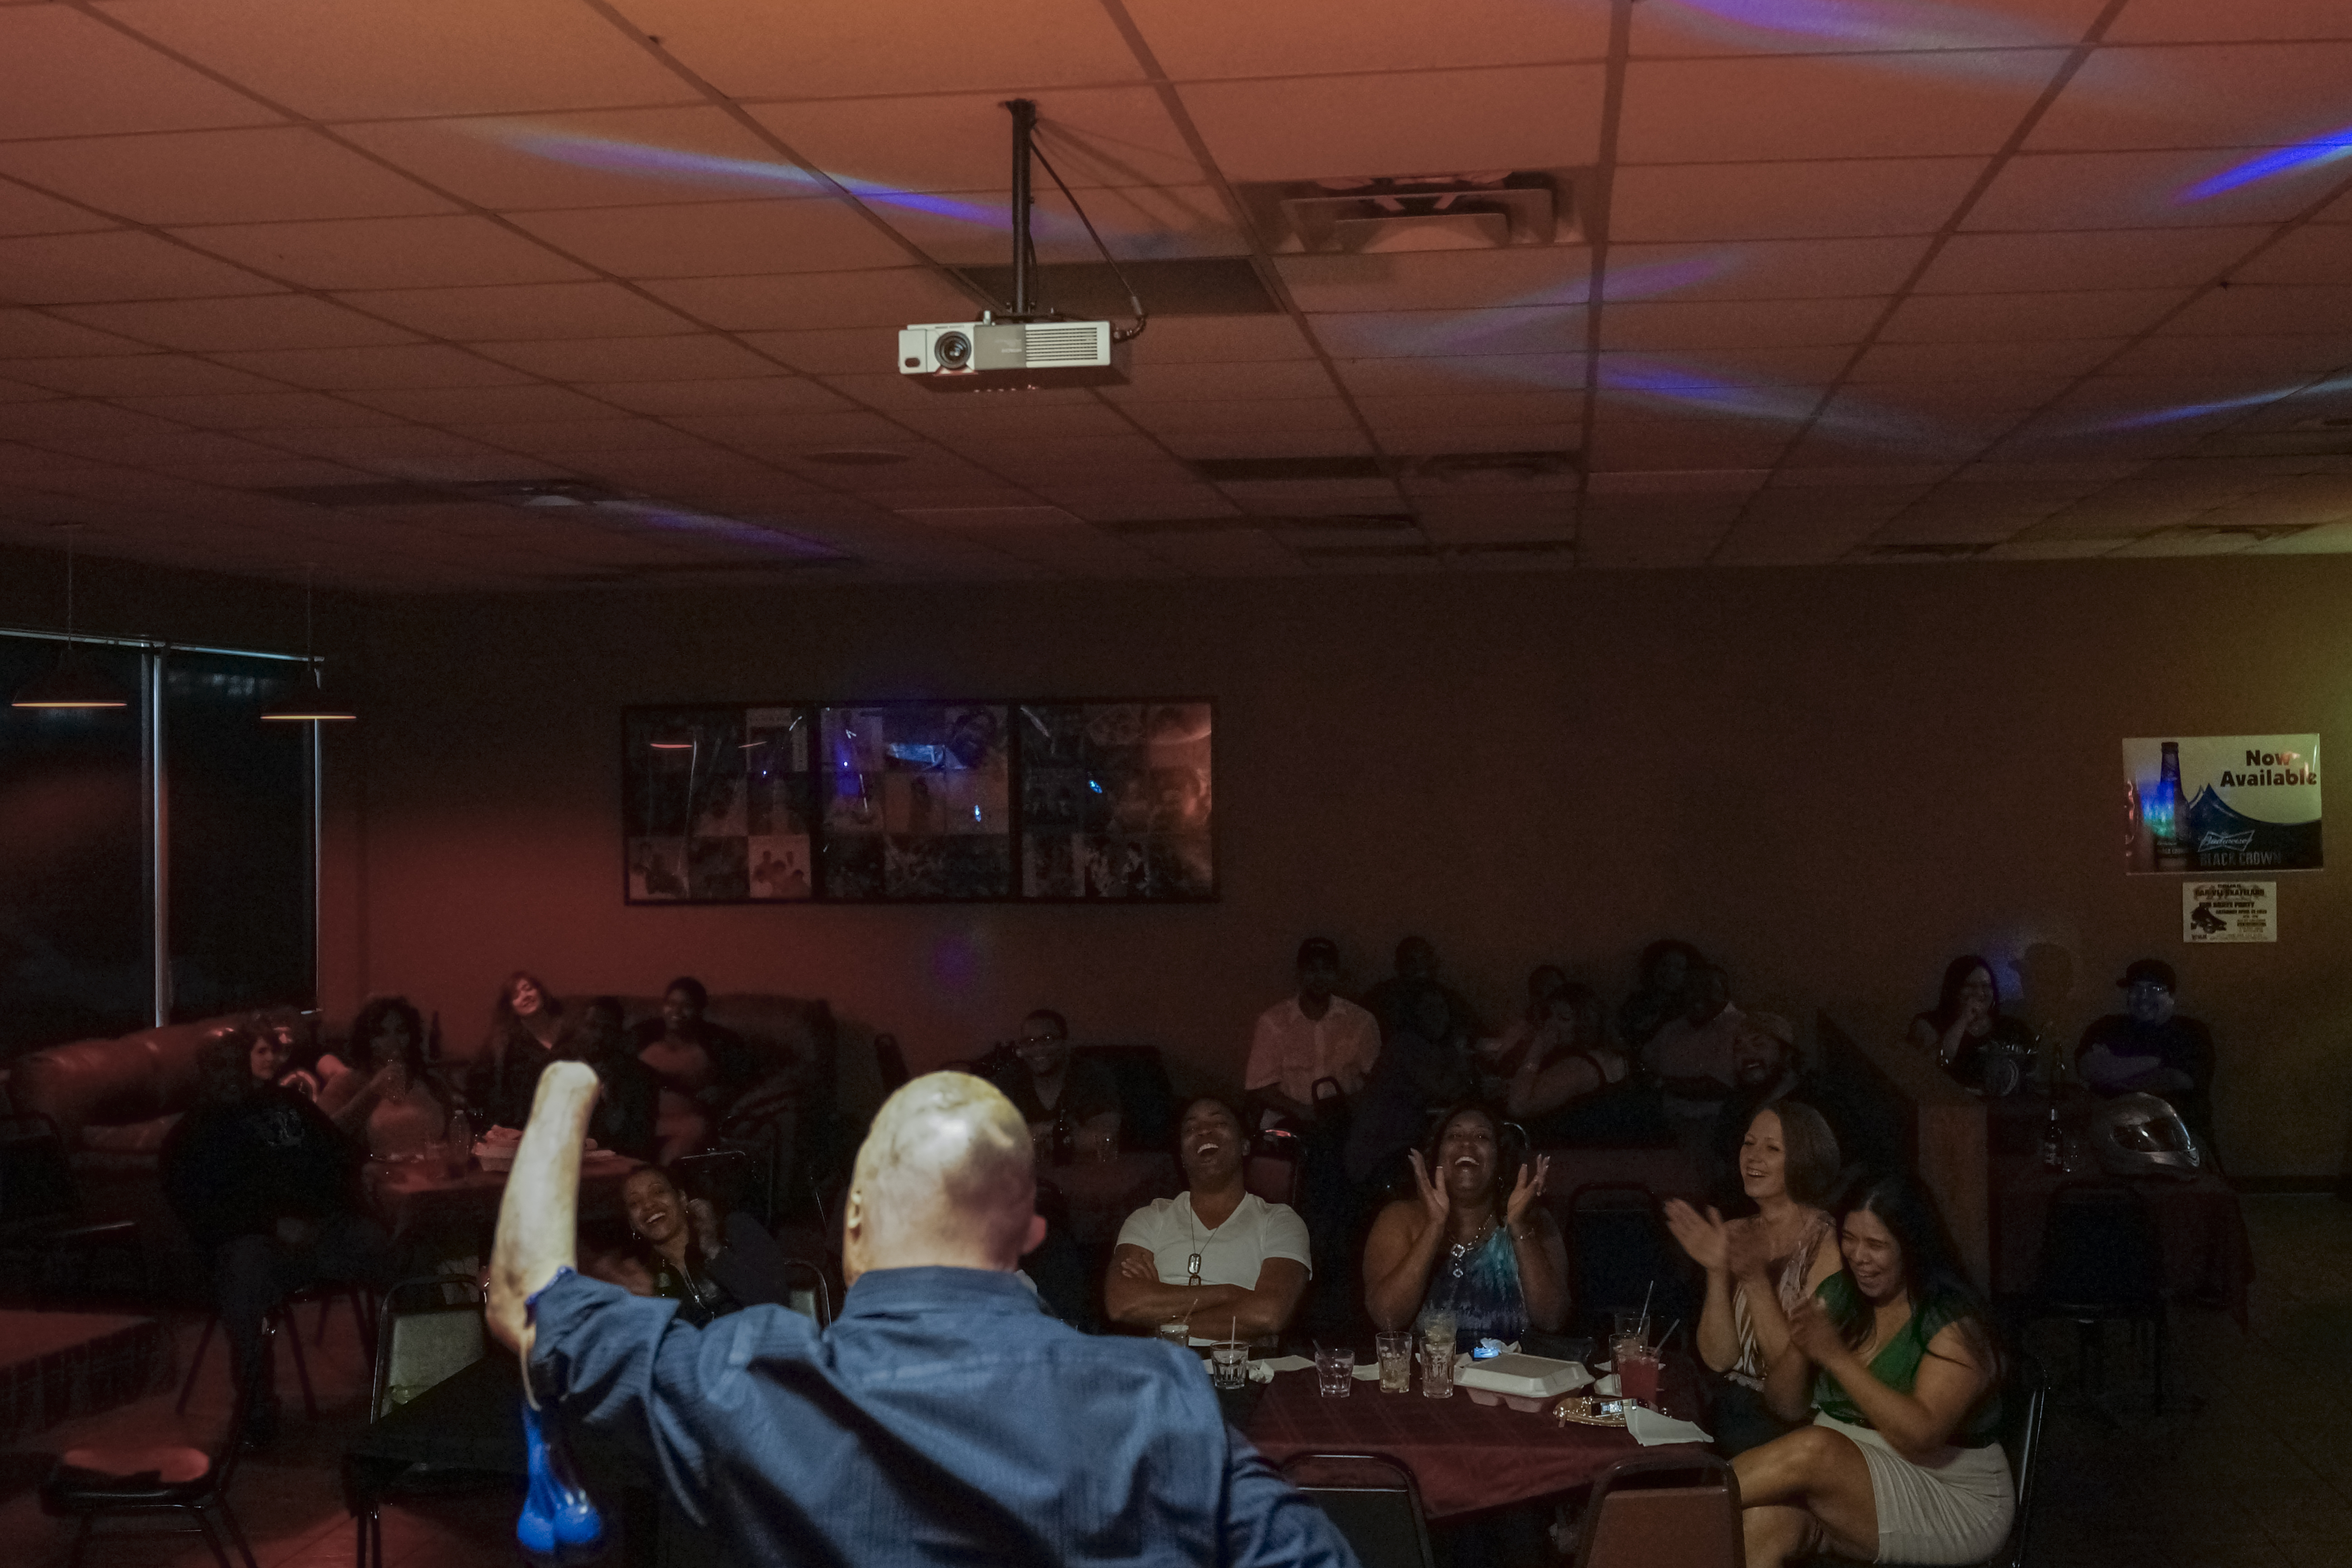 Bobby performs his comedy routine at the Uptown 78 Lounge. San Antonio, Texas, 2013.